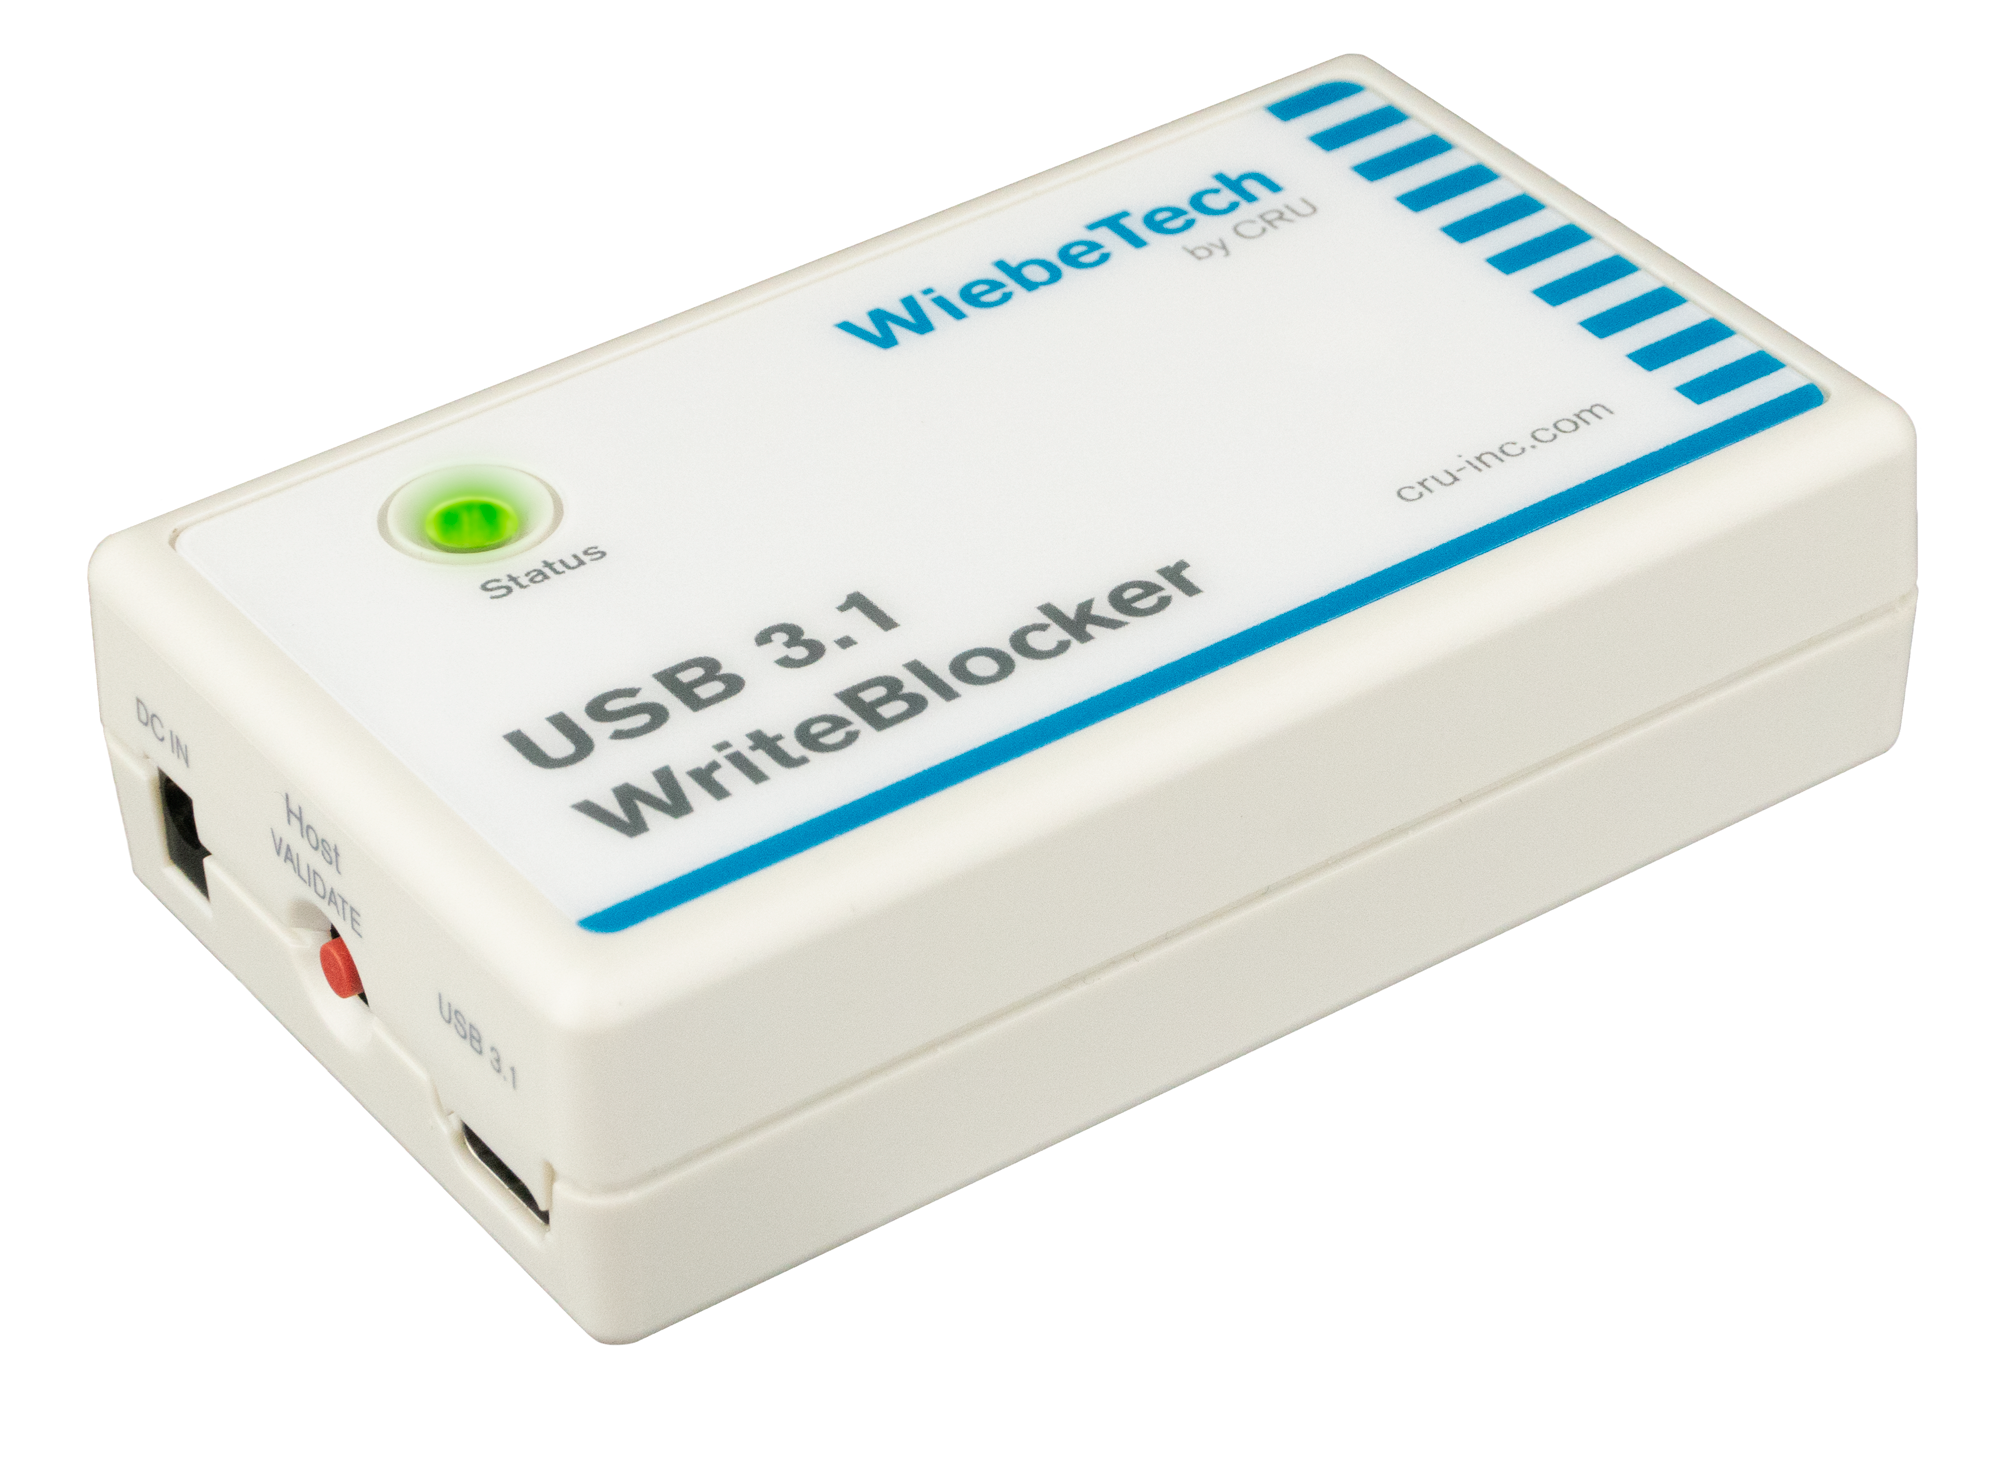 USB 3.1 WriteBlocker